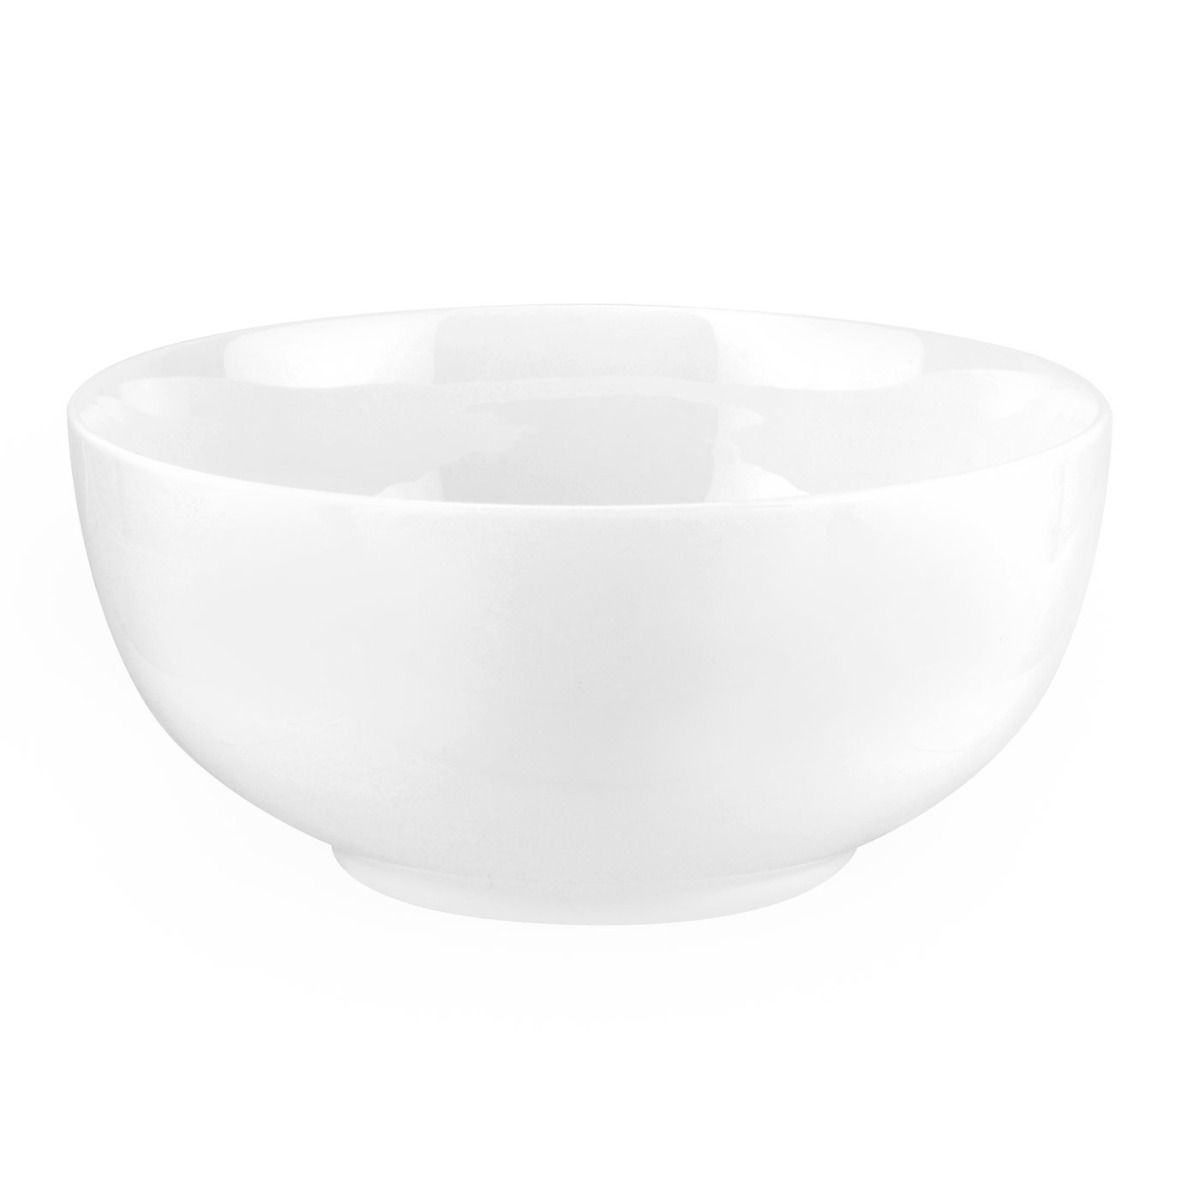 Royal Worcester Serendipity White Coupe Bowl - 15cm